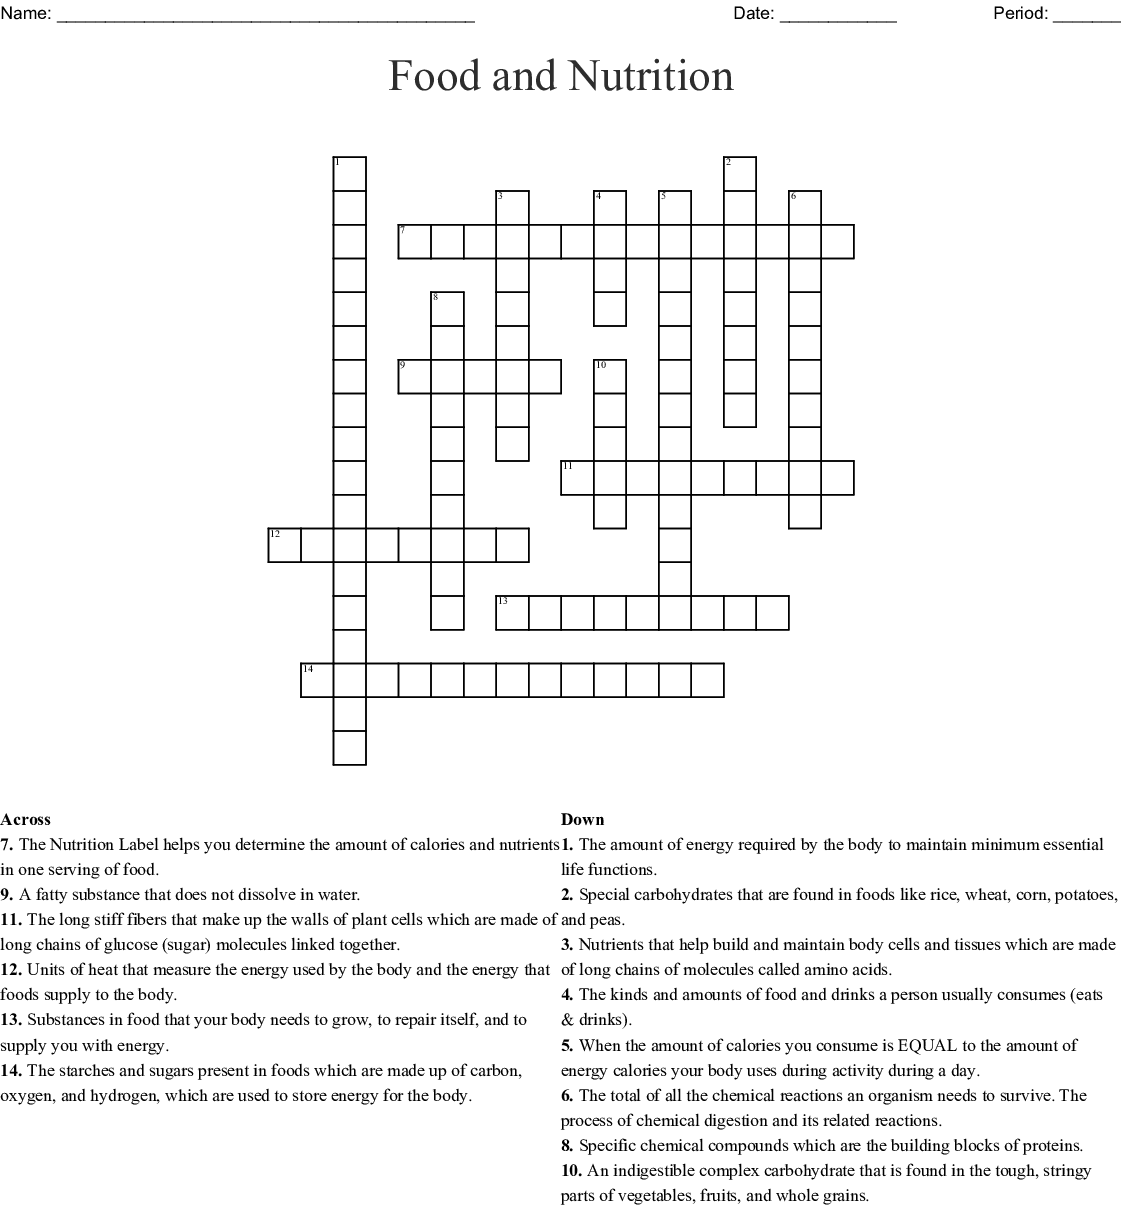 Fun Duh Mental Puzzle Nutrition Answers